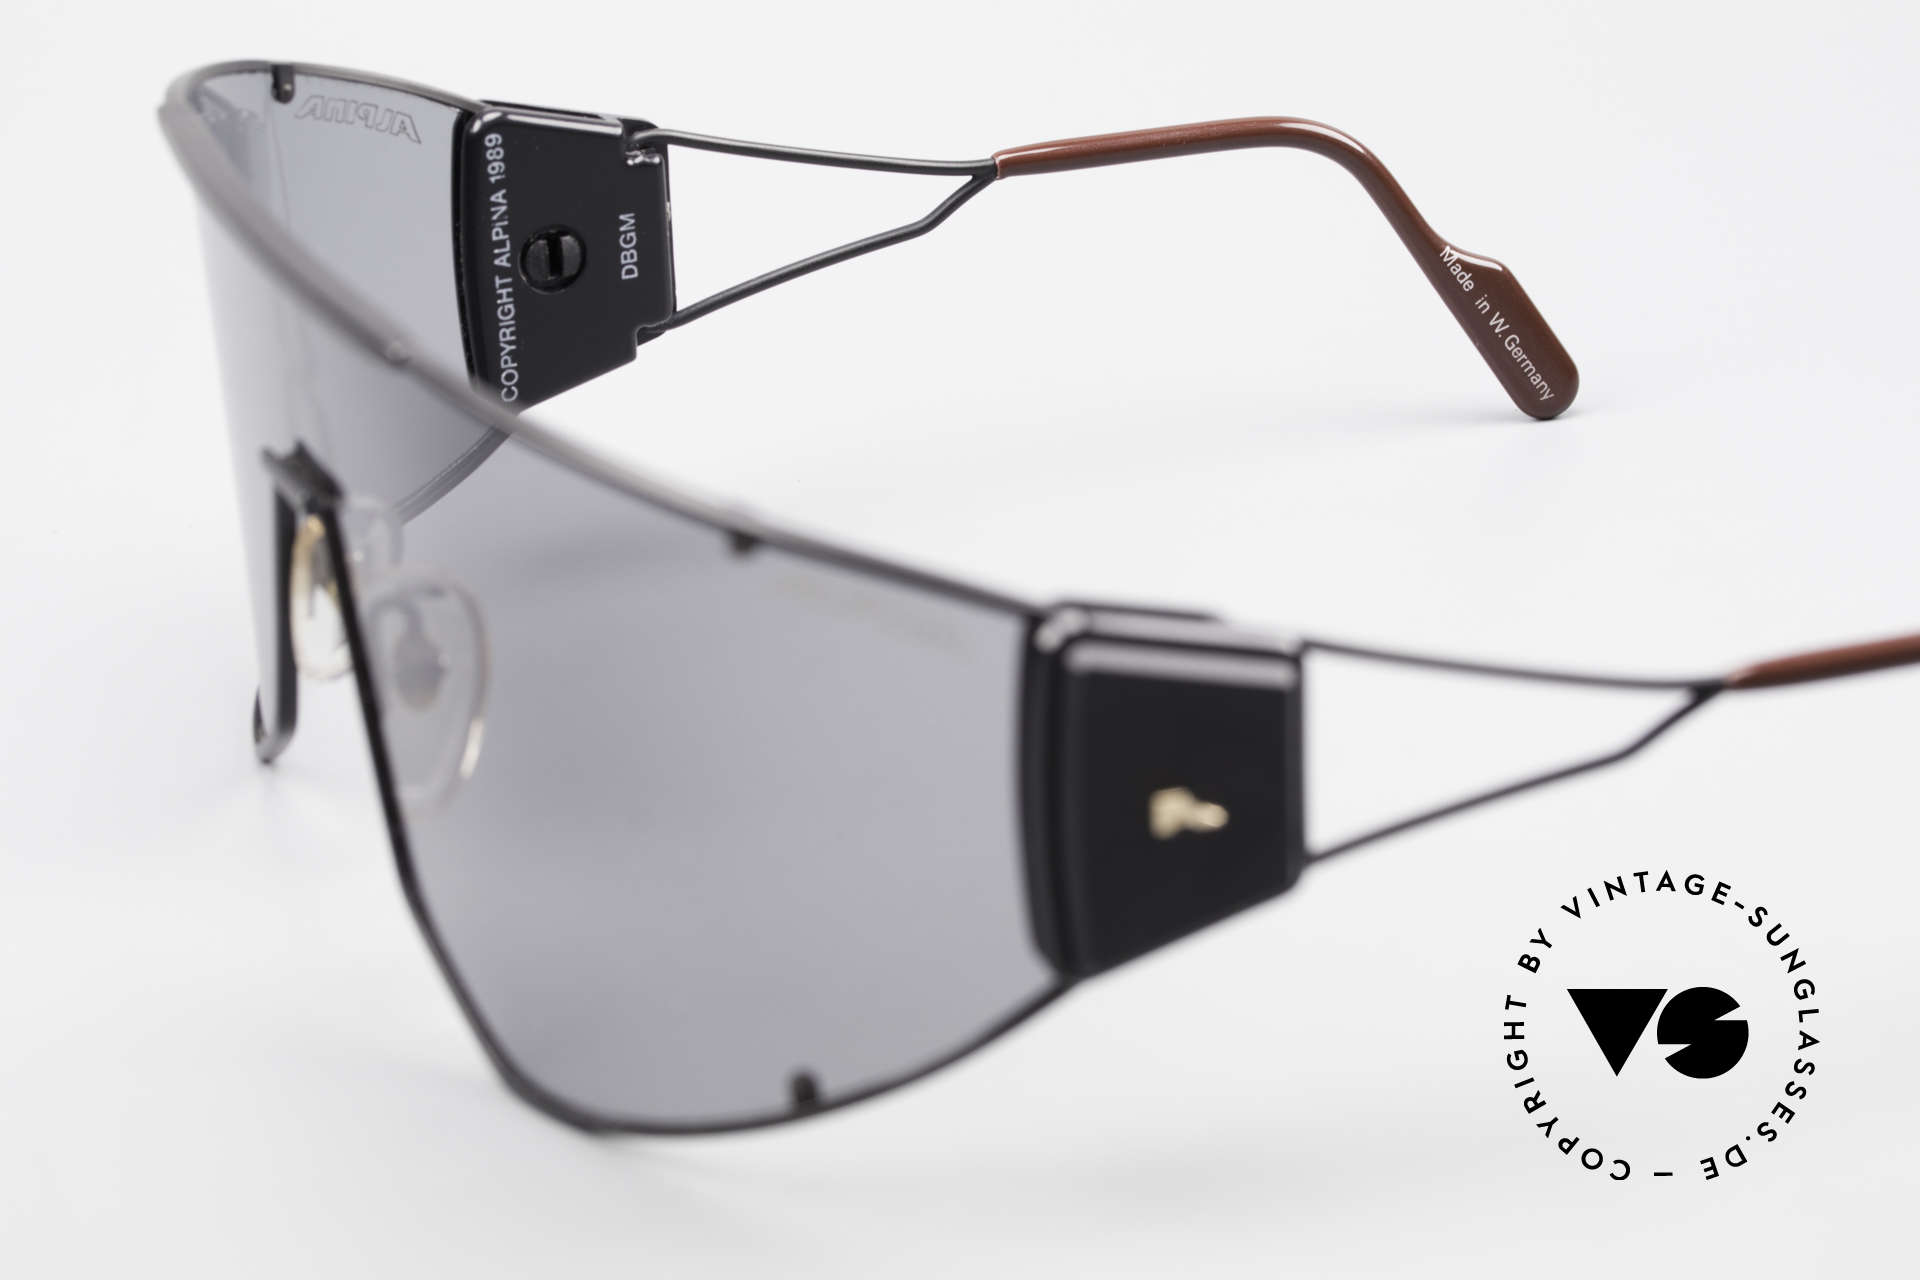 Alpina Goldwing Rare 80's Celebrity Sunglasses, Size: large, Made for Men and Women